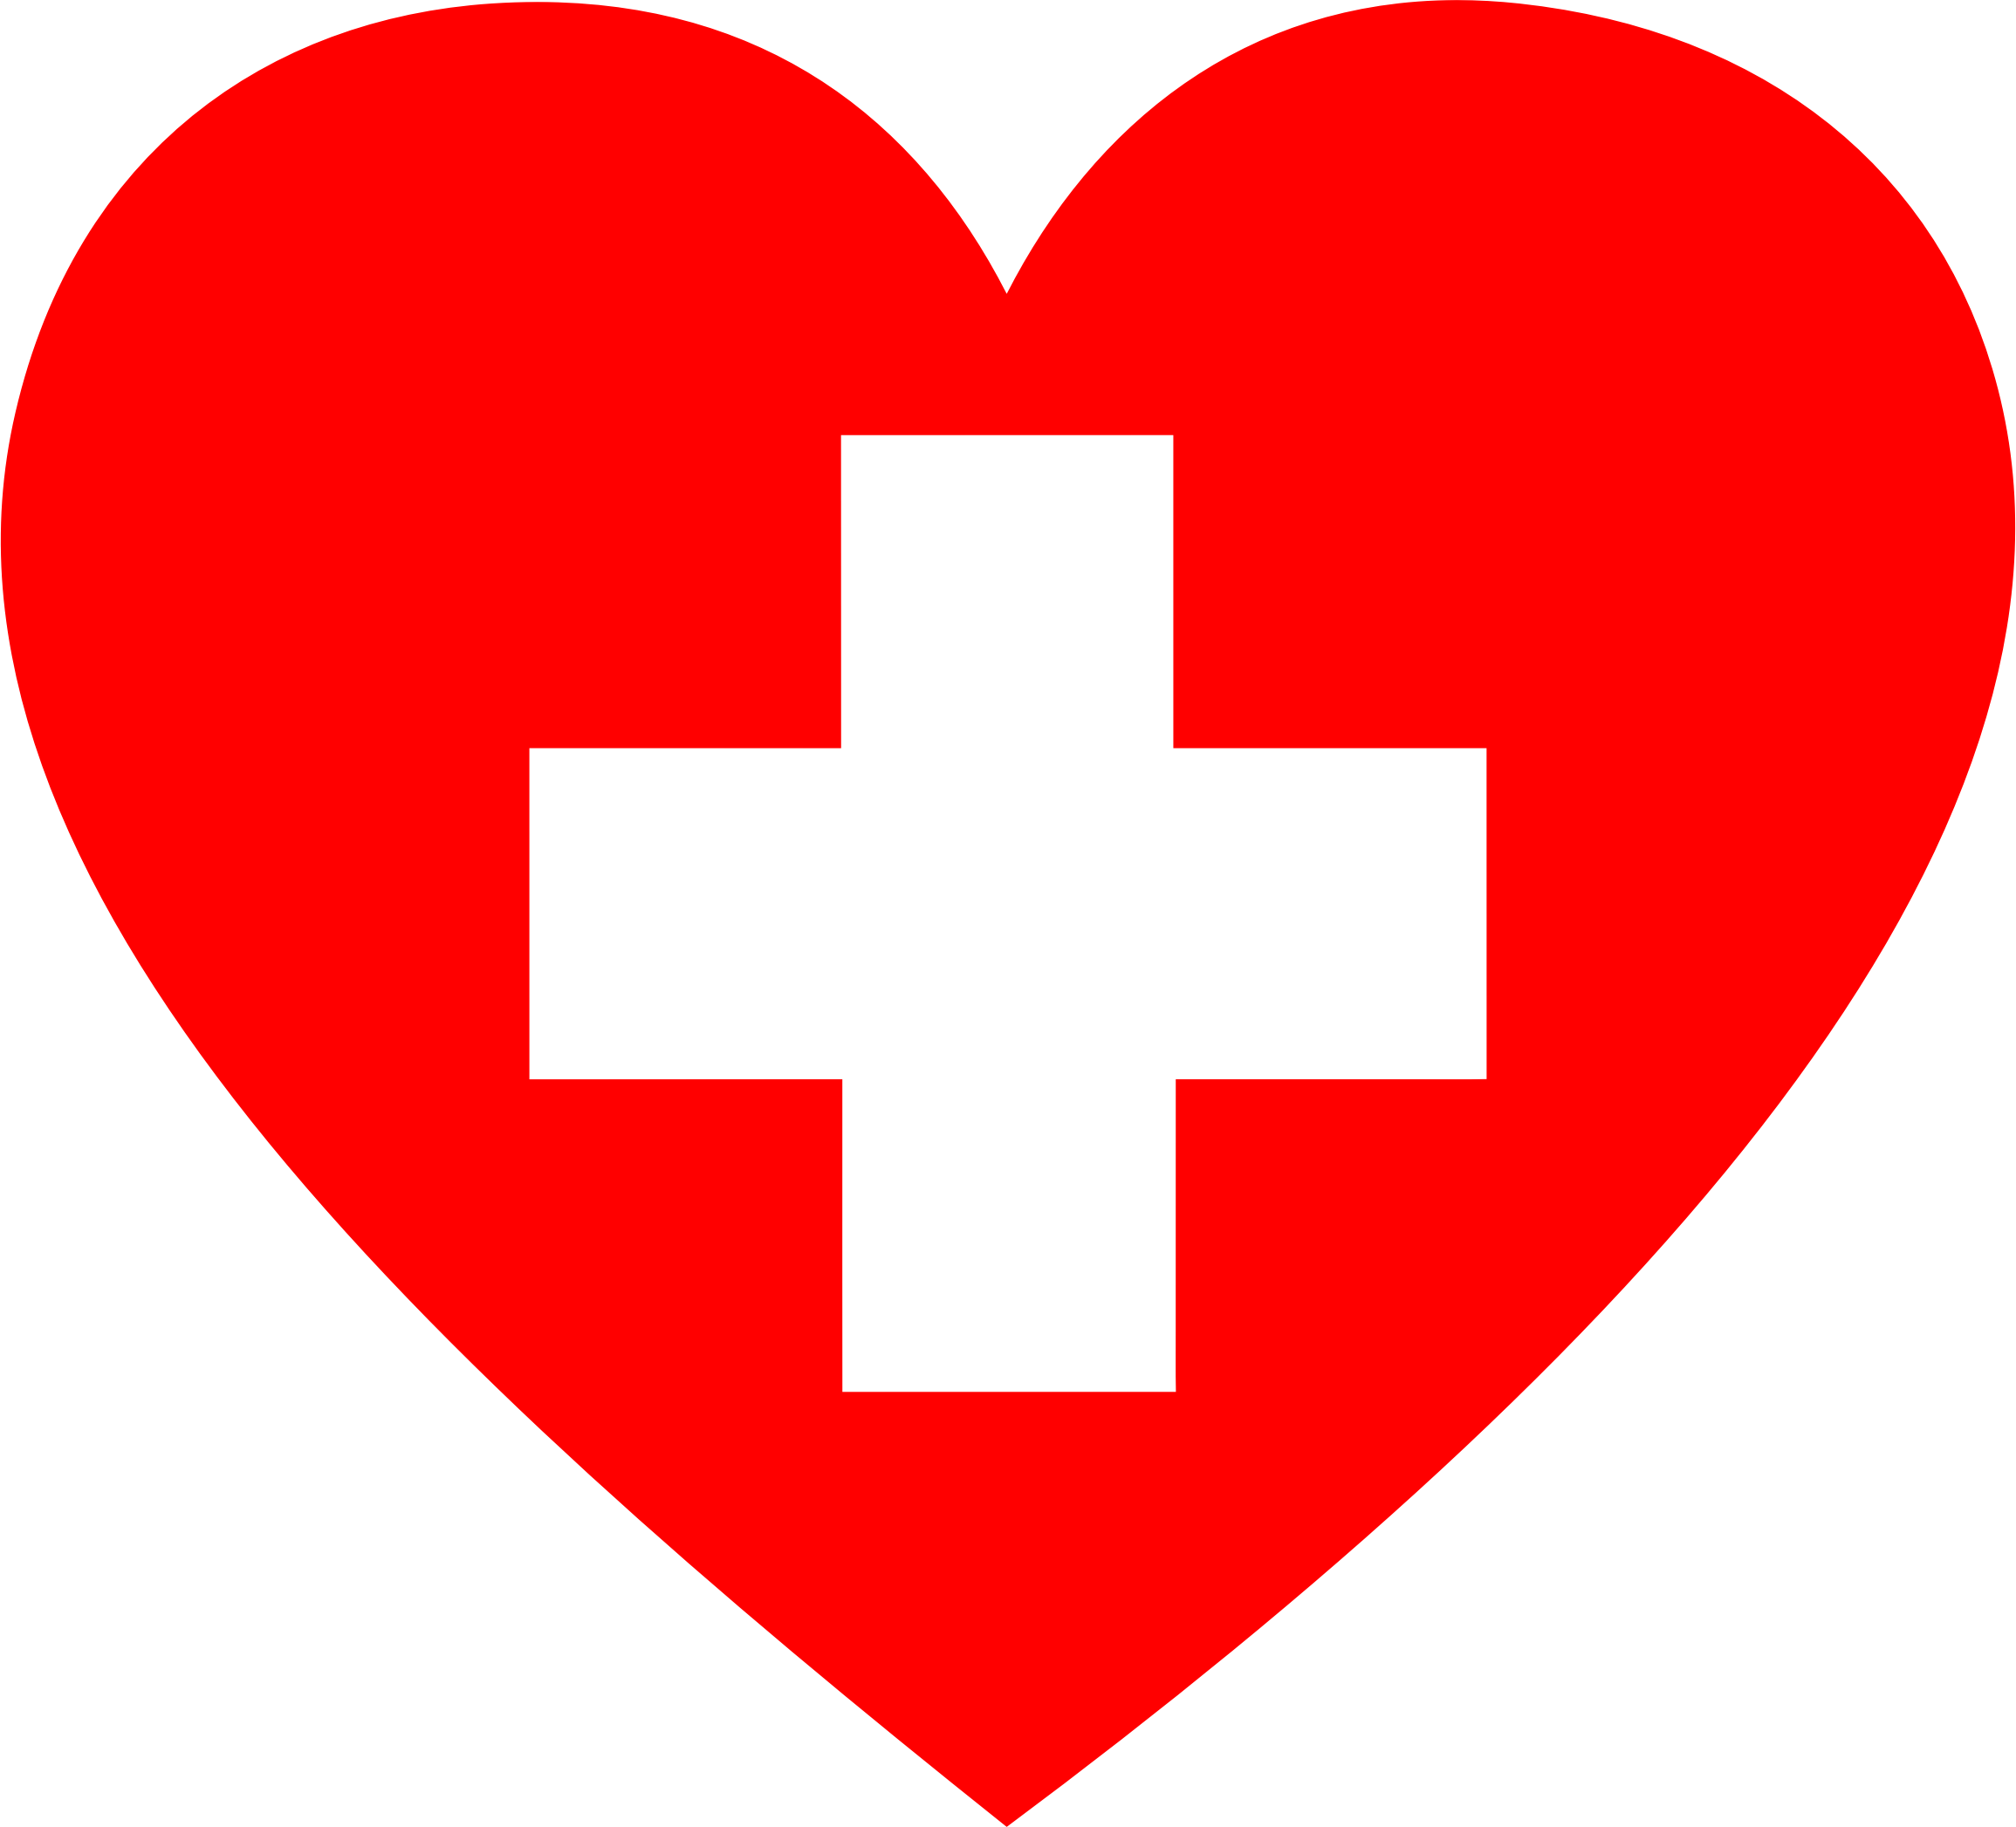 First Aid Heart by GDJ